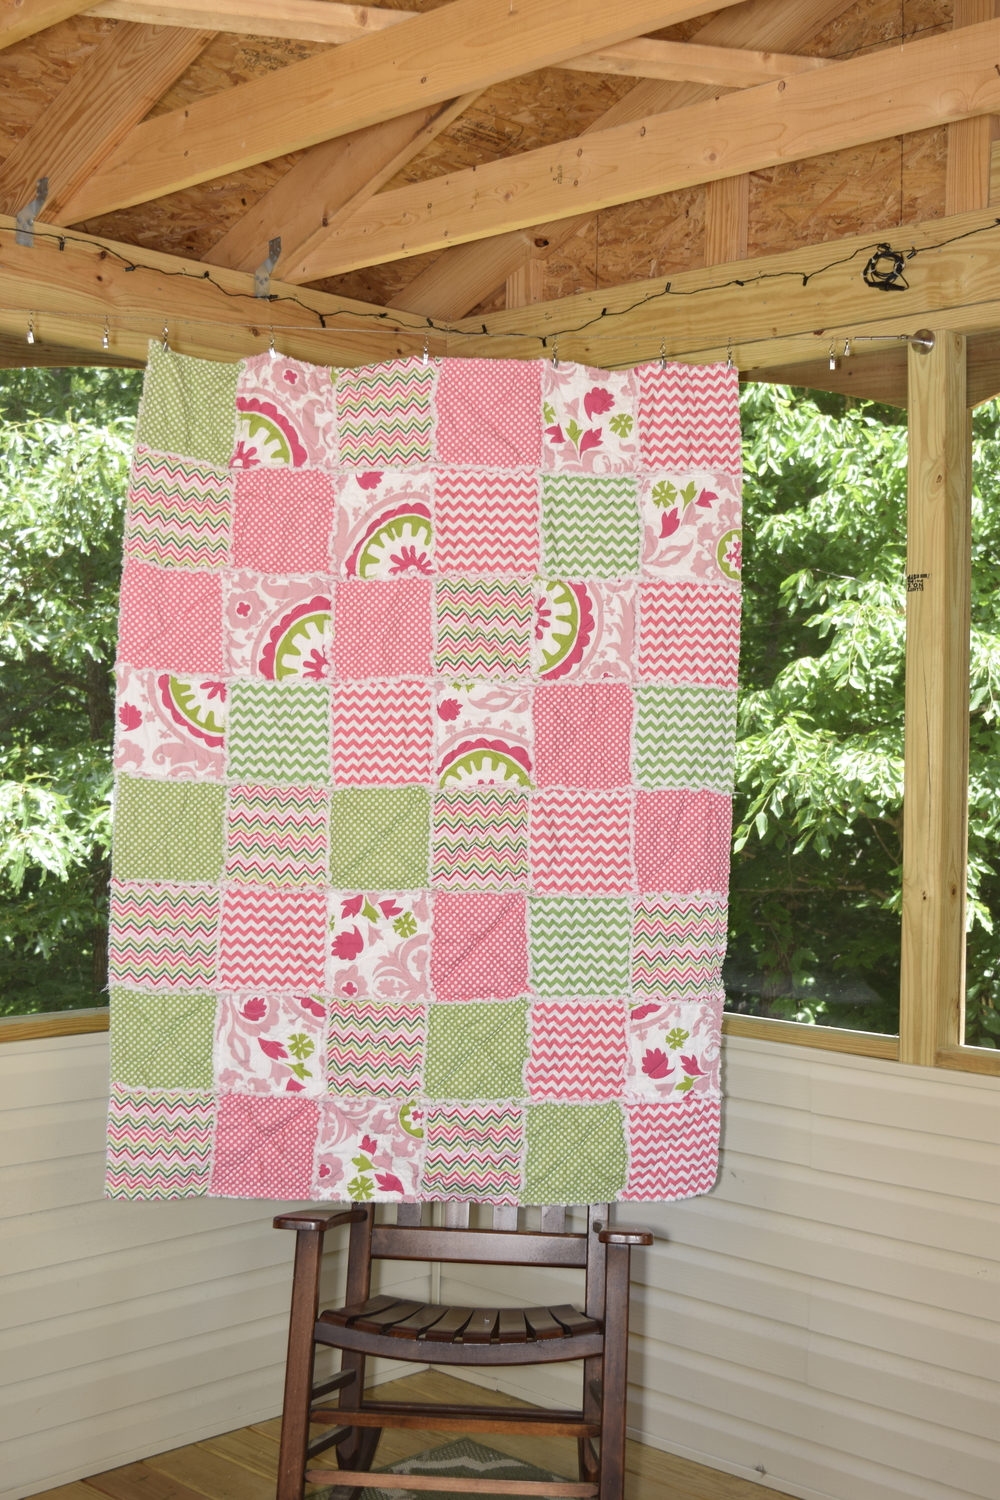 This quilt was just finished recently!